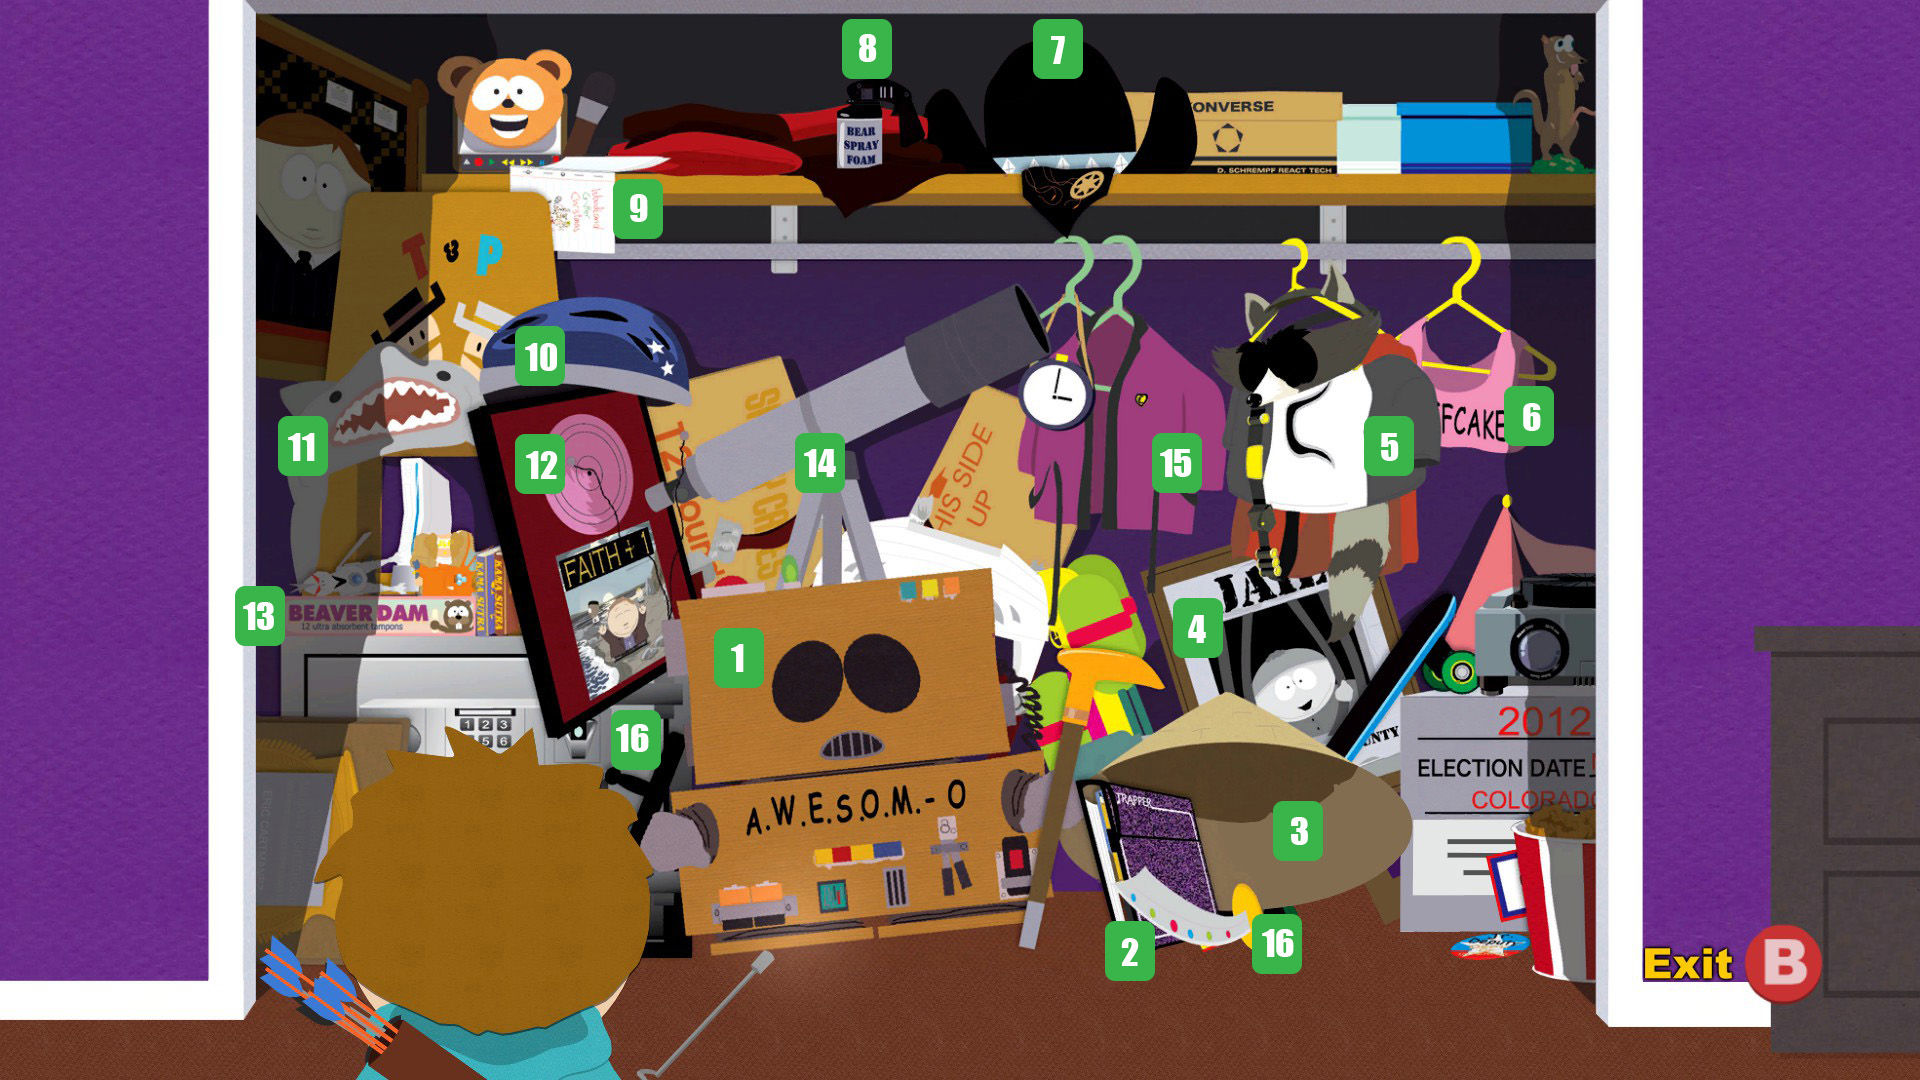 List Of References In South Park The Stick Of Truth South Park